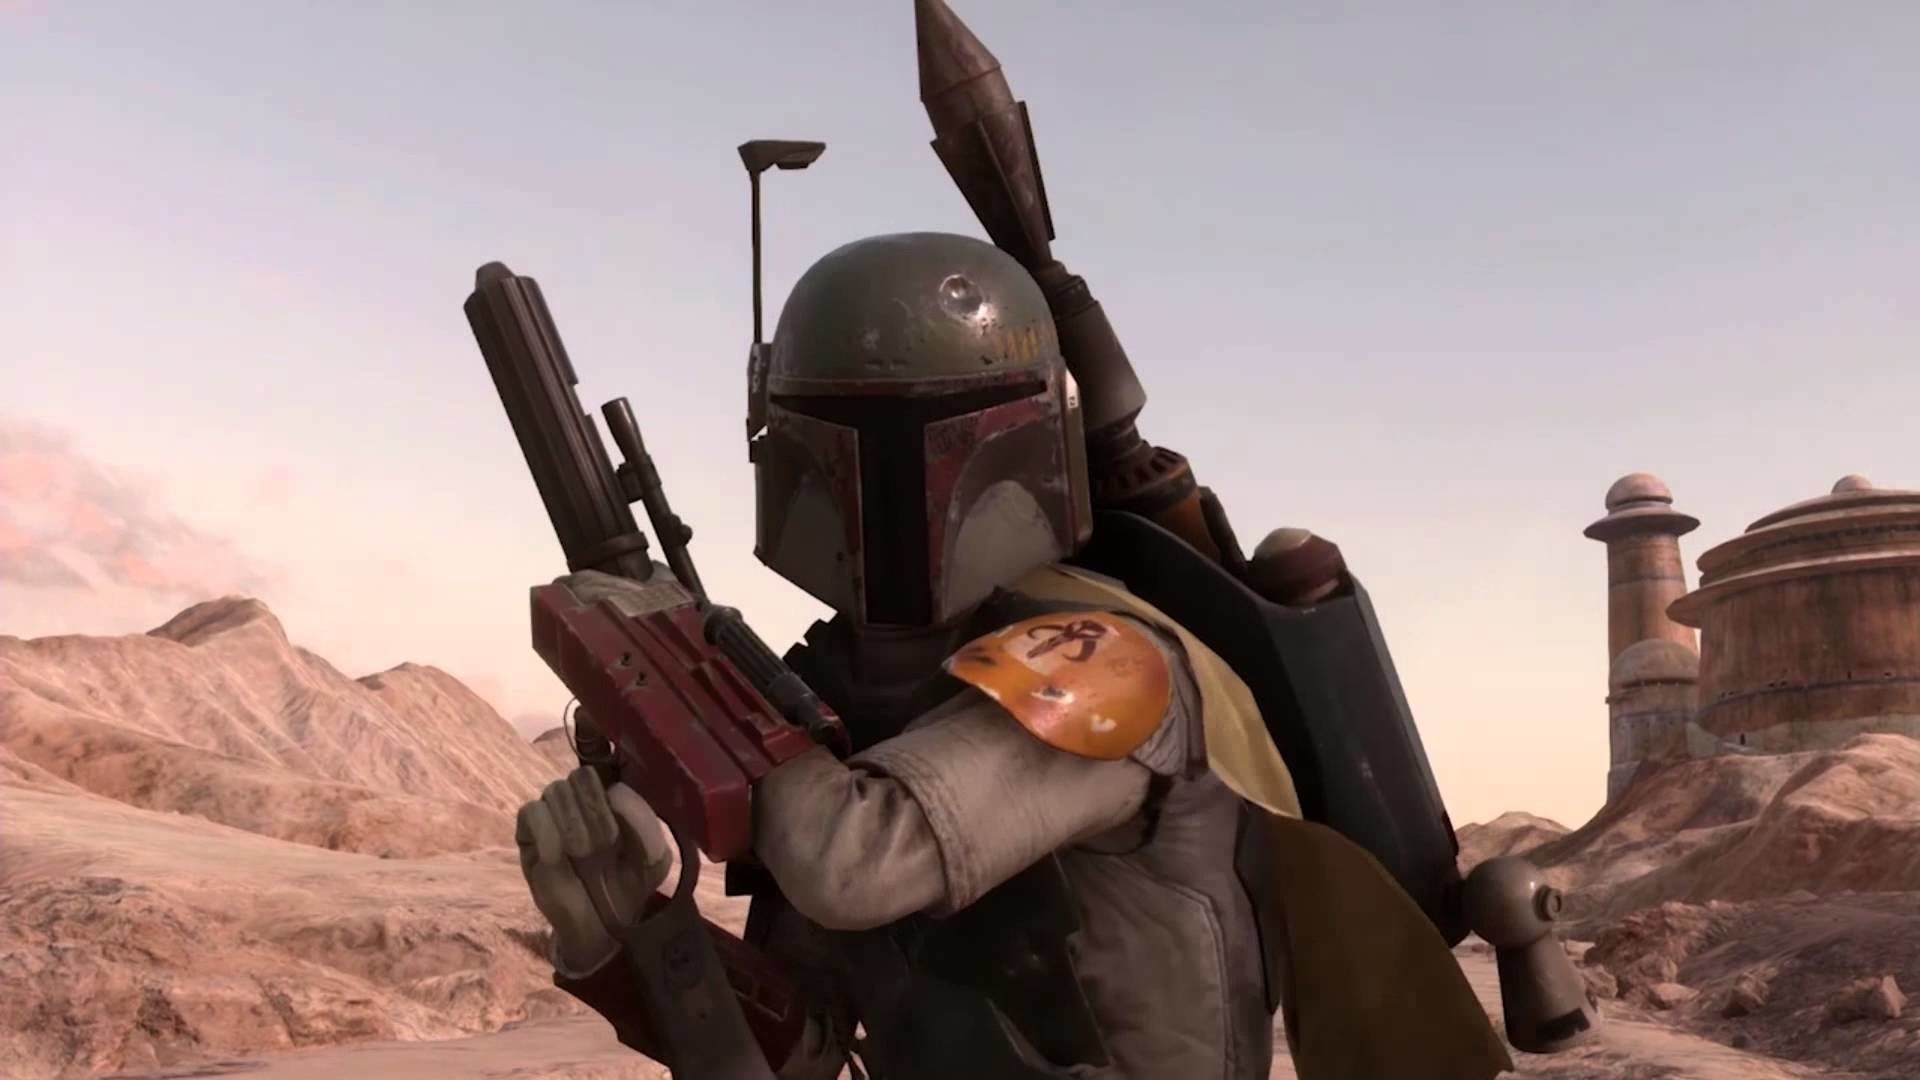 Star Wars: Battlefront – NEW Tatooine Gameplay (Boba Fett, Leia, New Game  Modes/Weapons) – YouTube